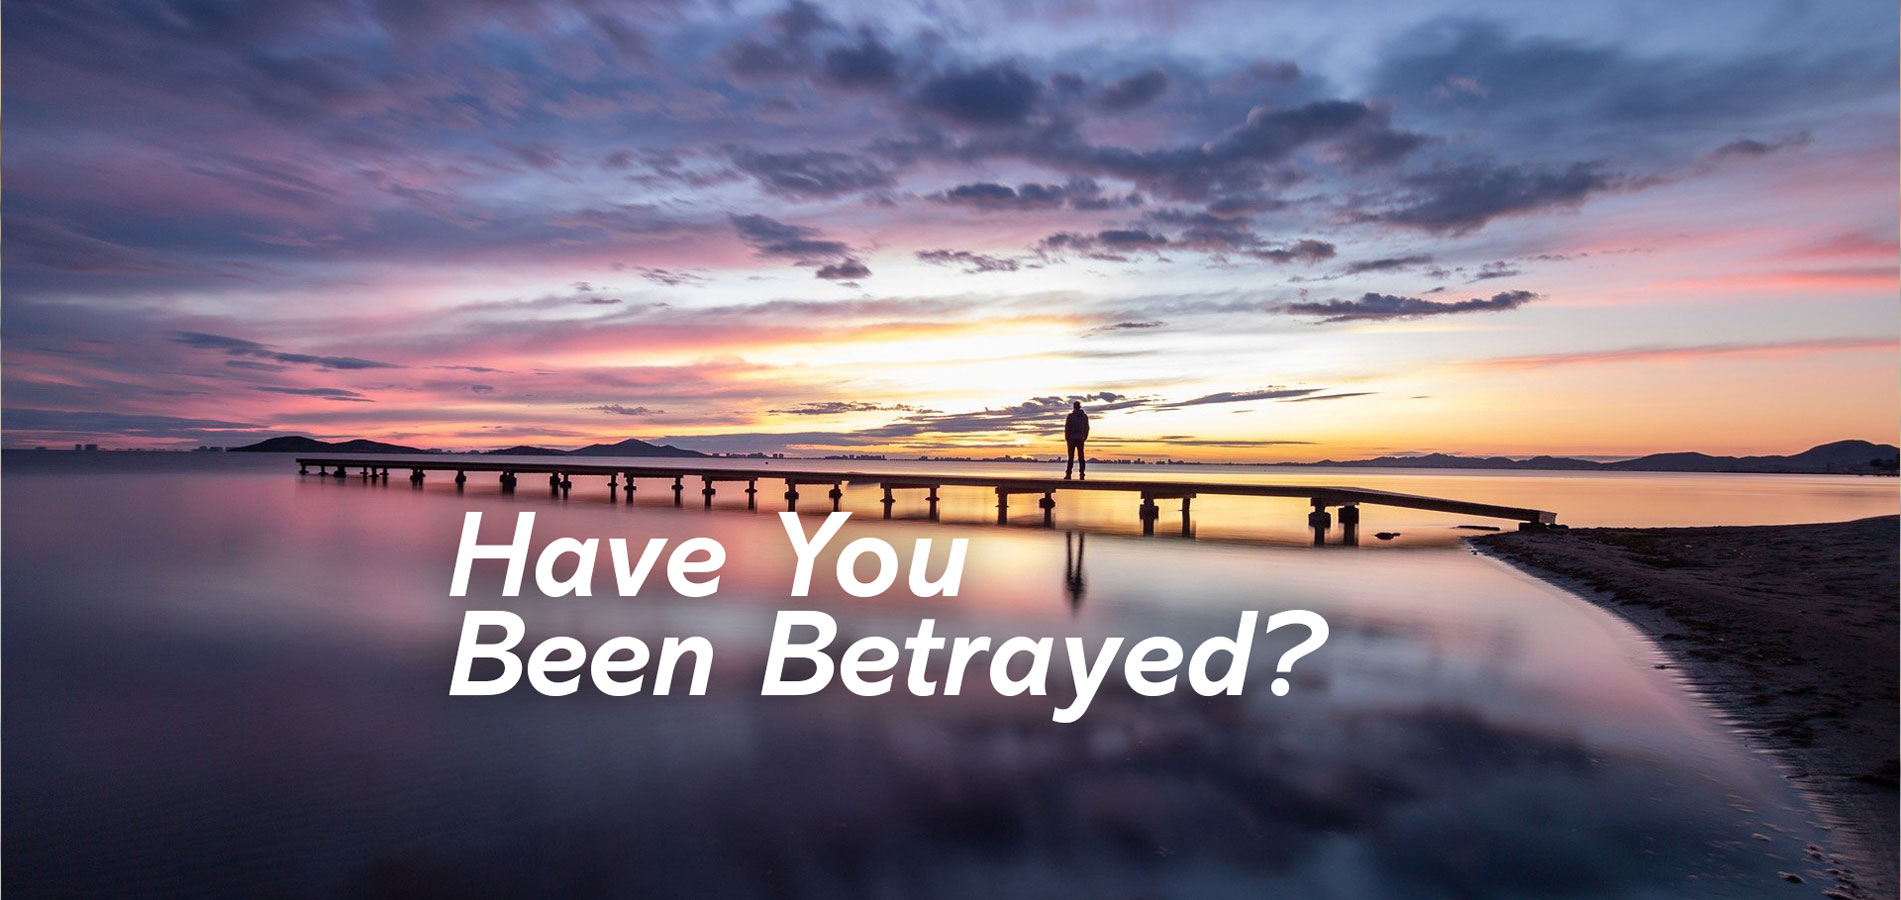 Have You Been Betrayed?